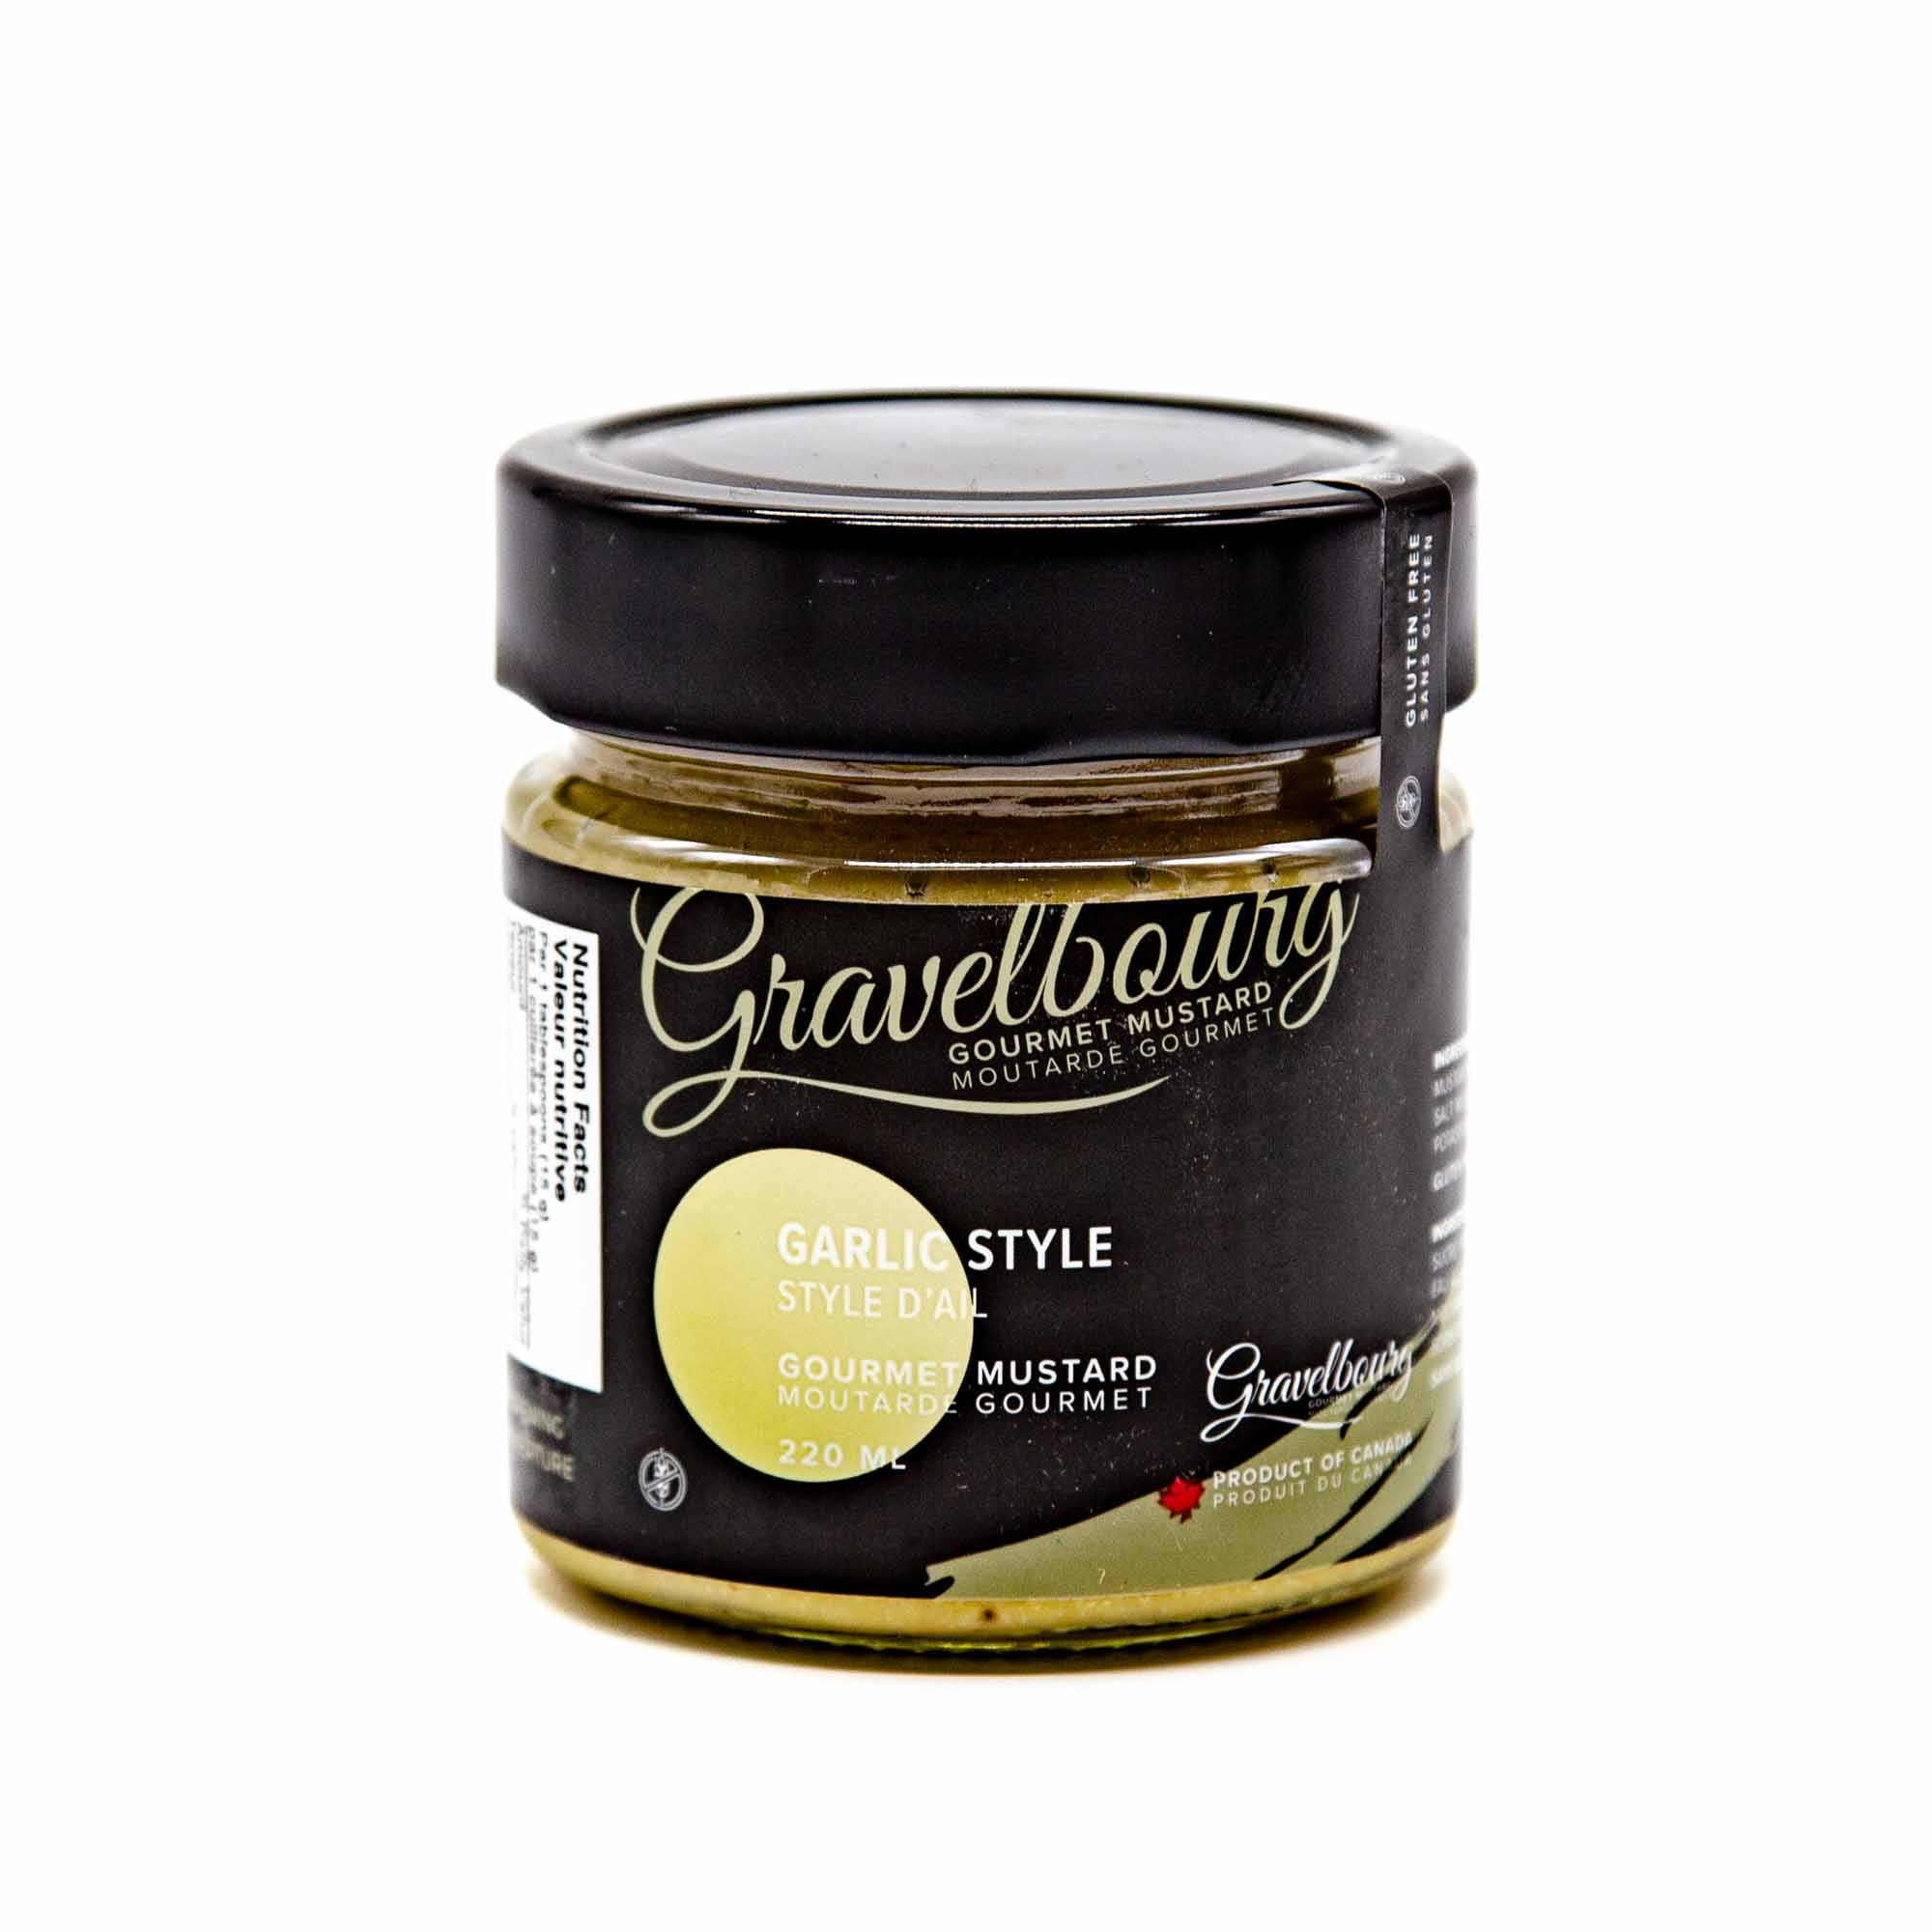 Gravelbourg Mustard - Garlic Style Gourmet Mustard - Mortise And Tenon